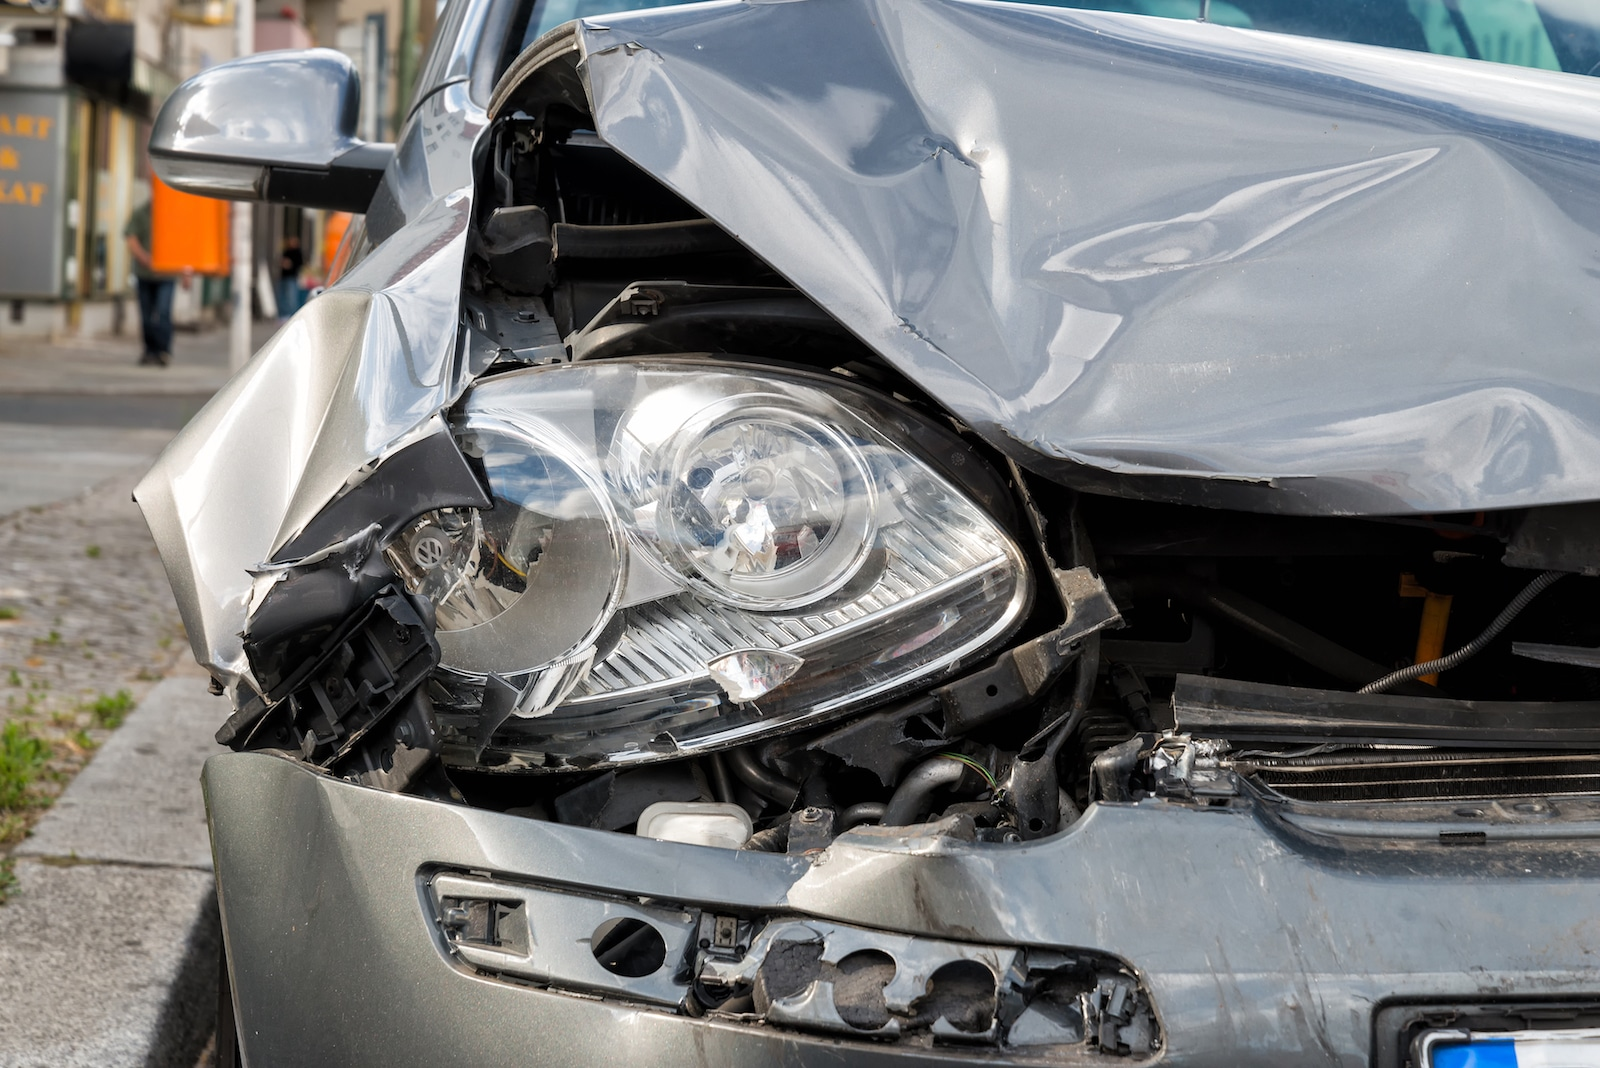 Totaled Car: How to Get the Best Auto Insurance Settlement